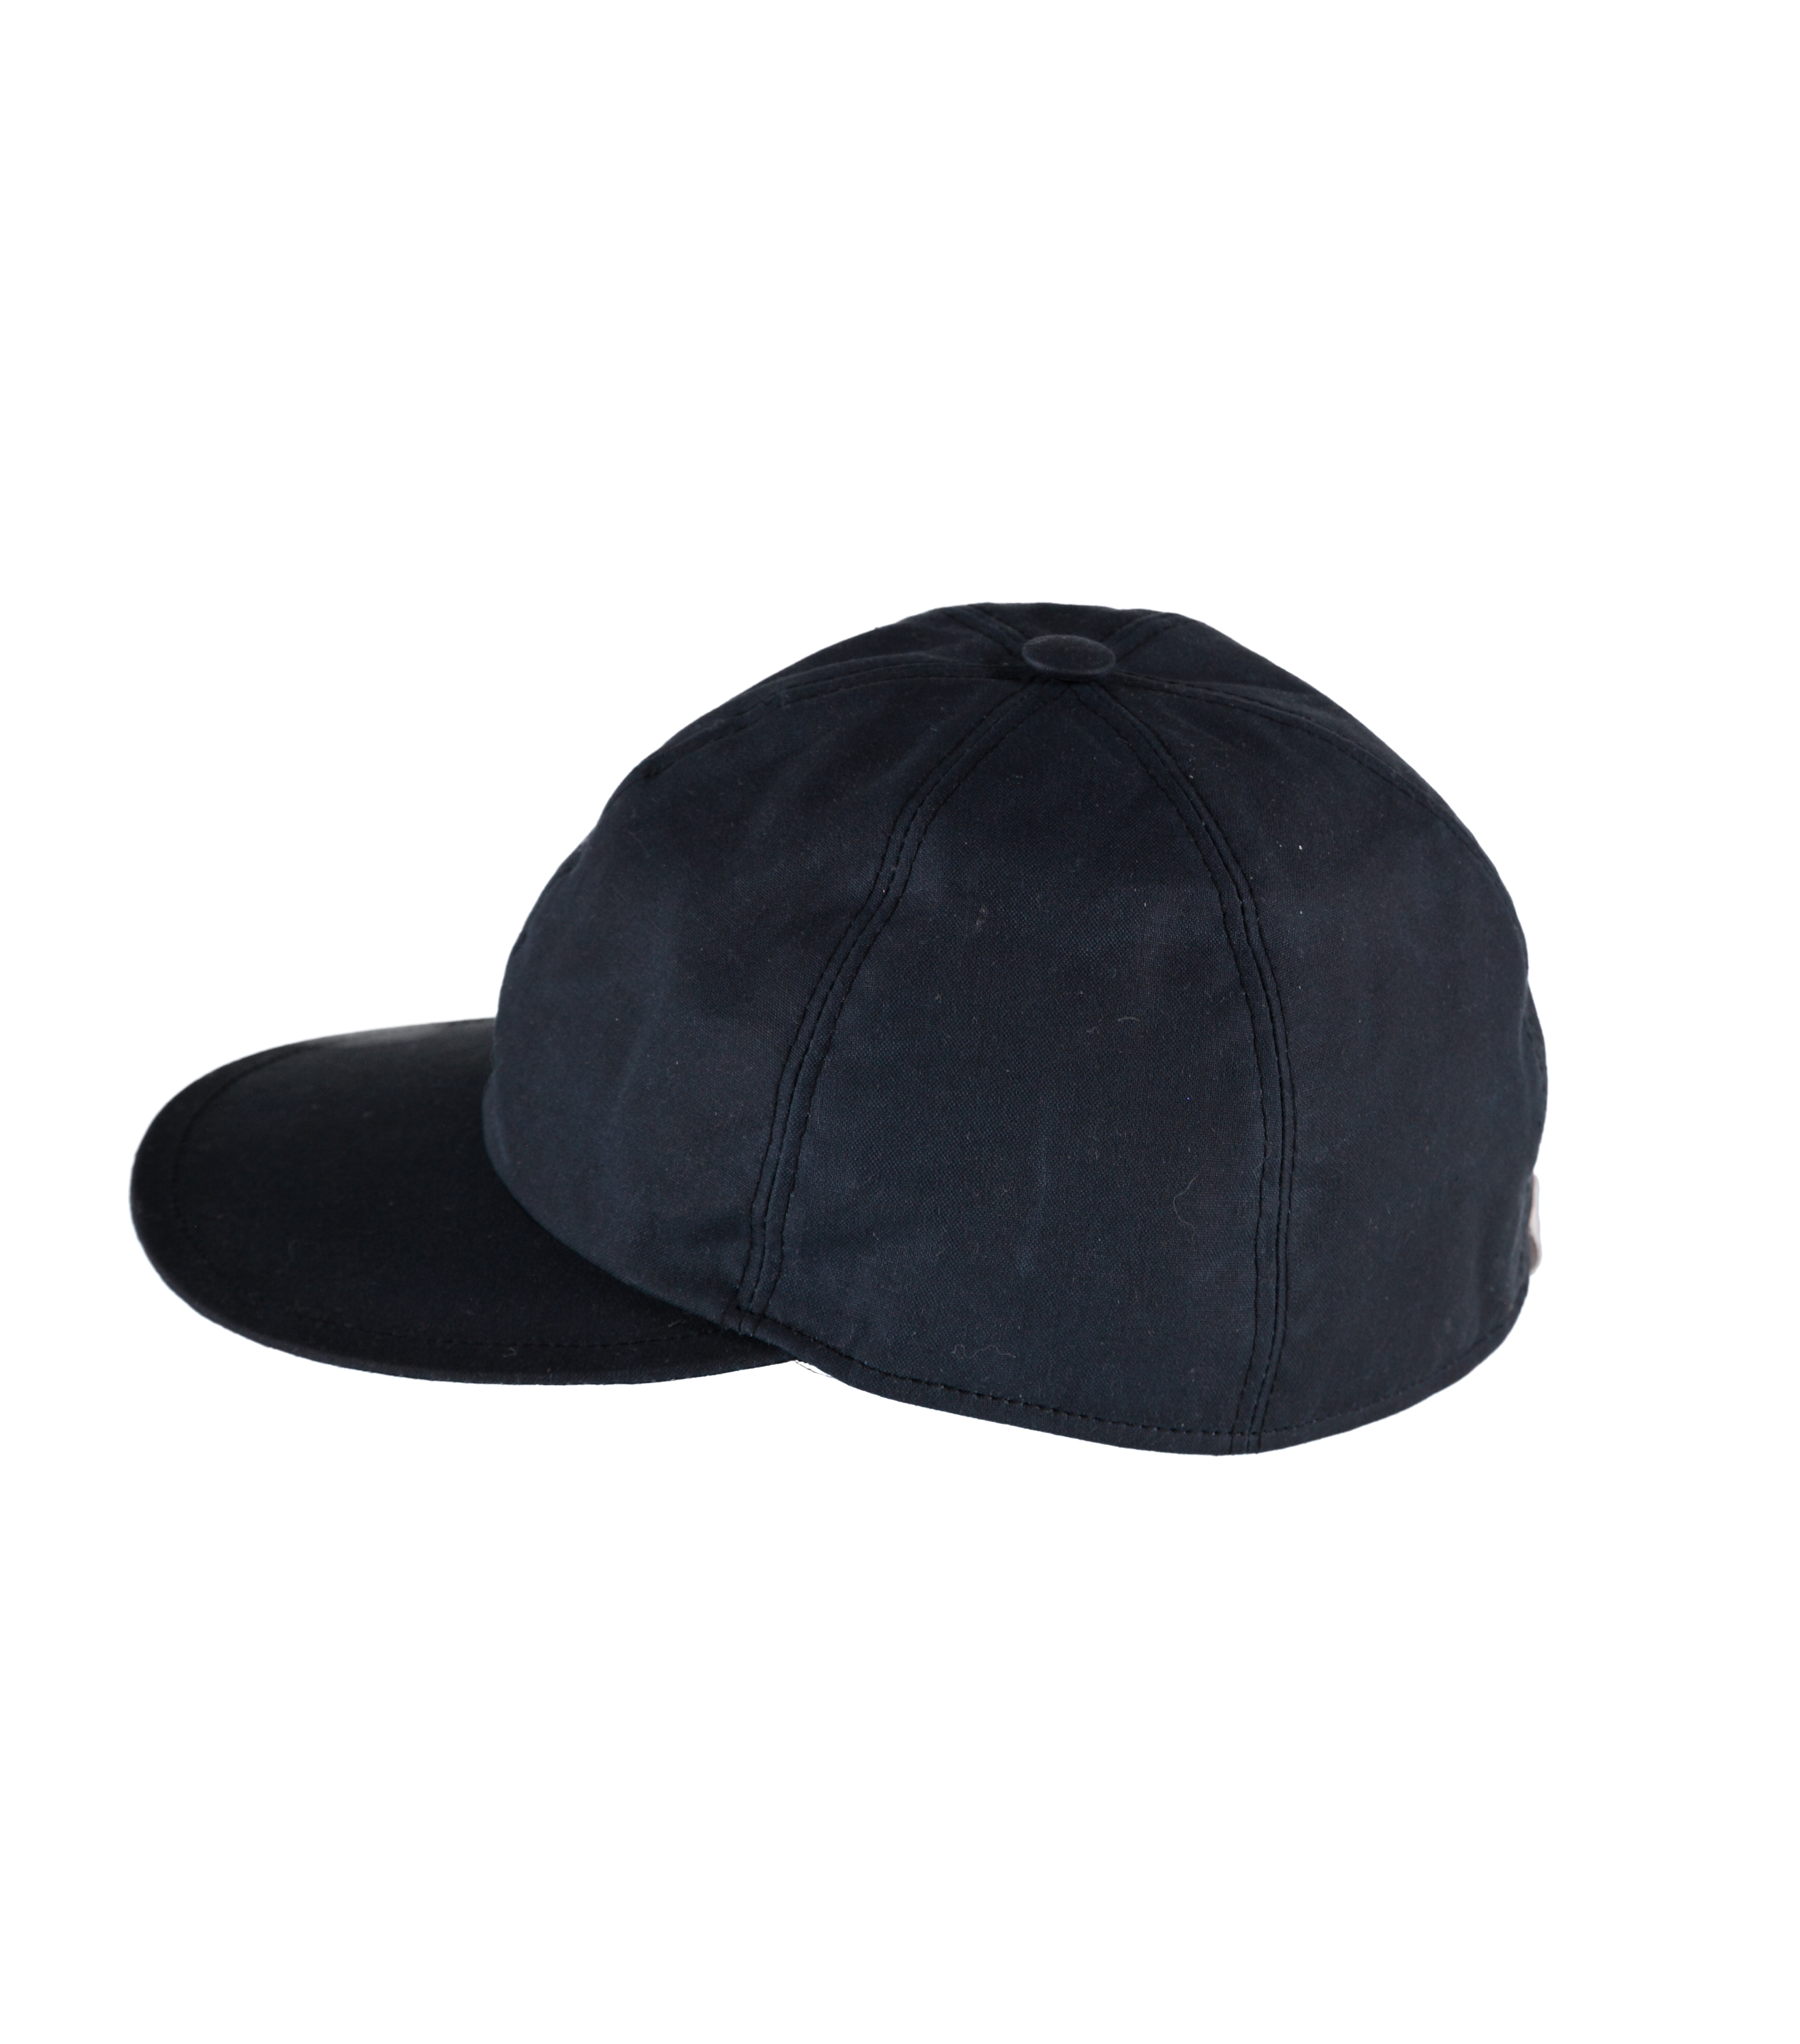 Cap Dimanches - Wax navy